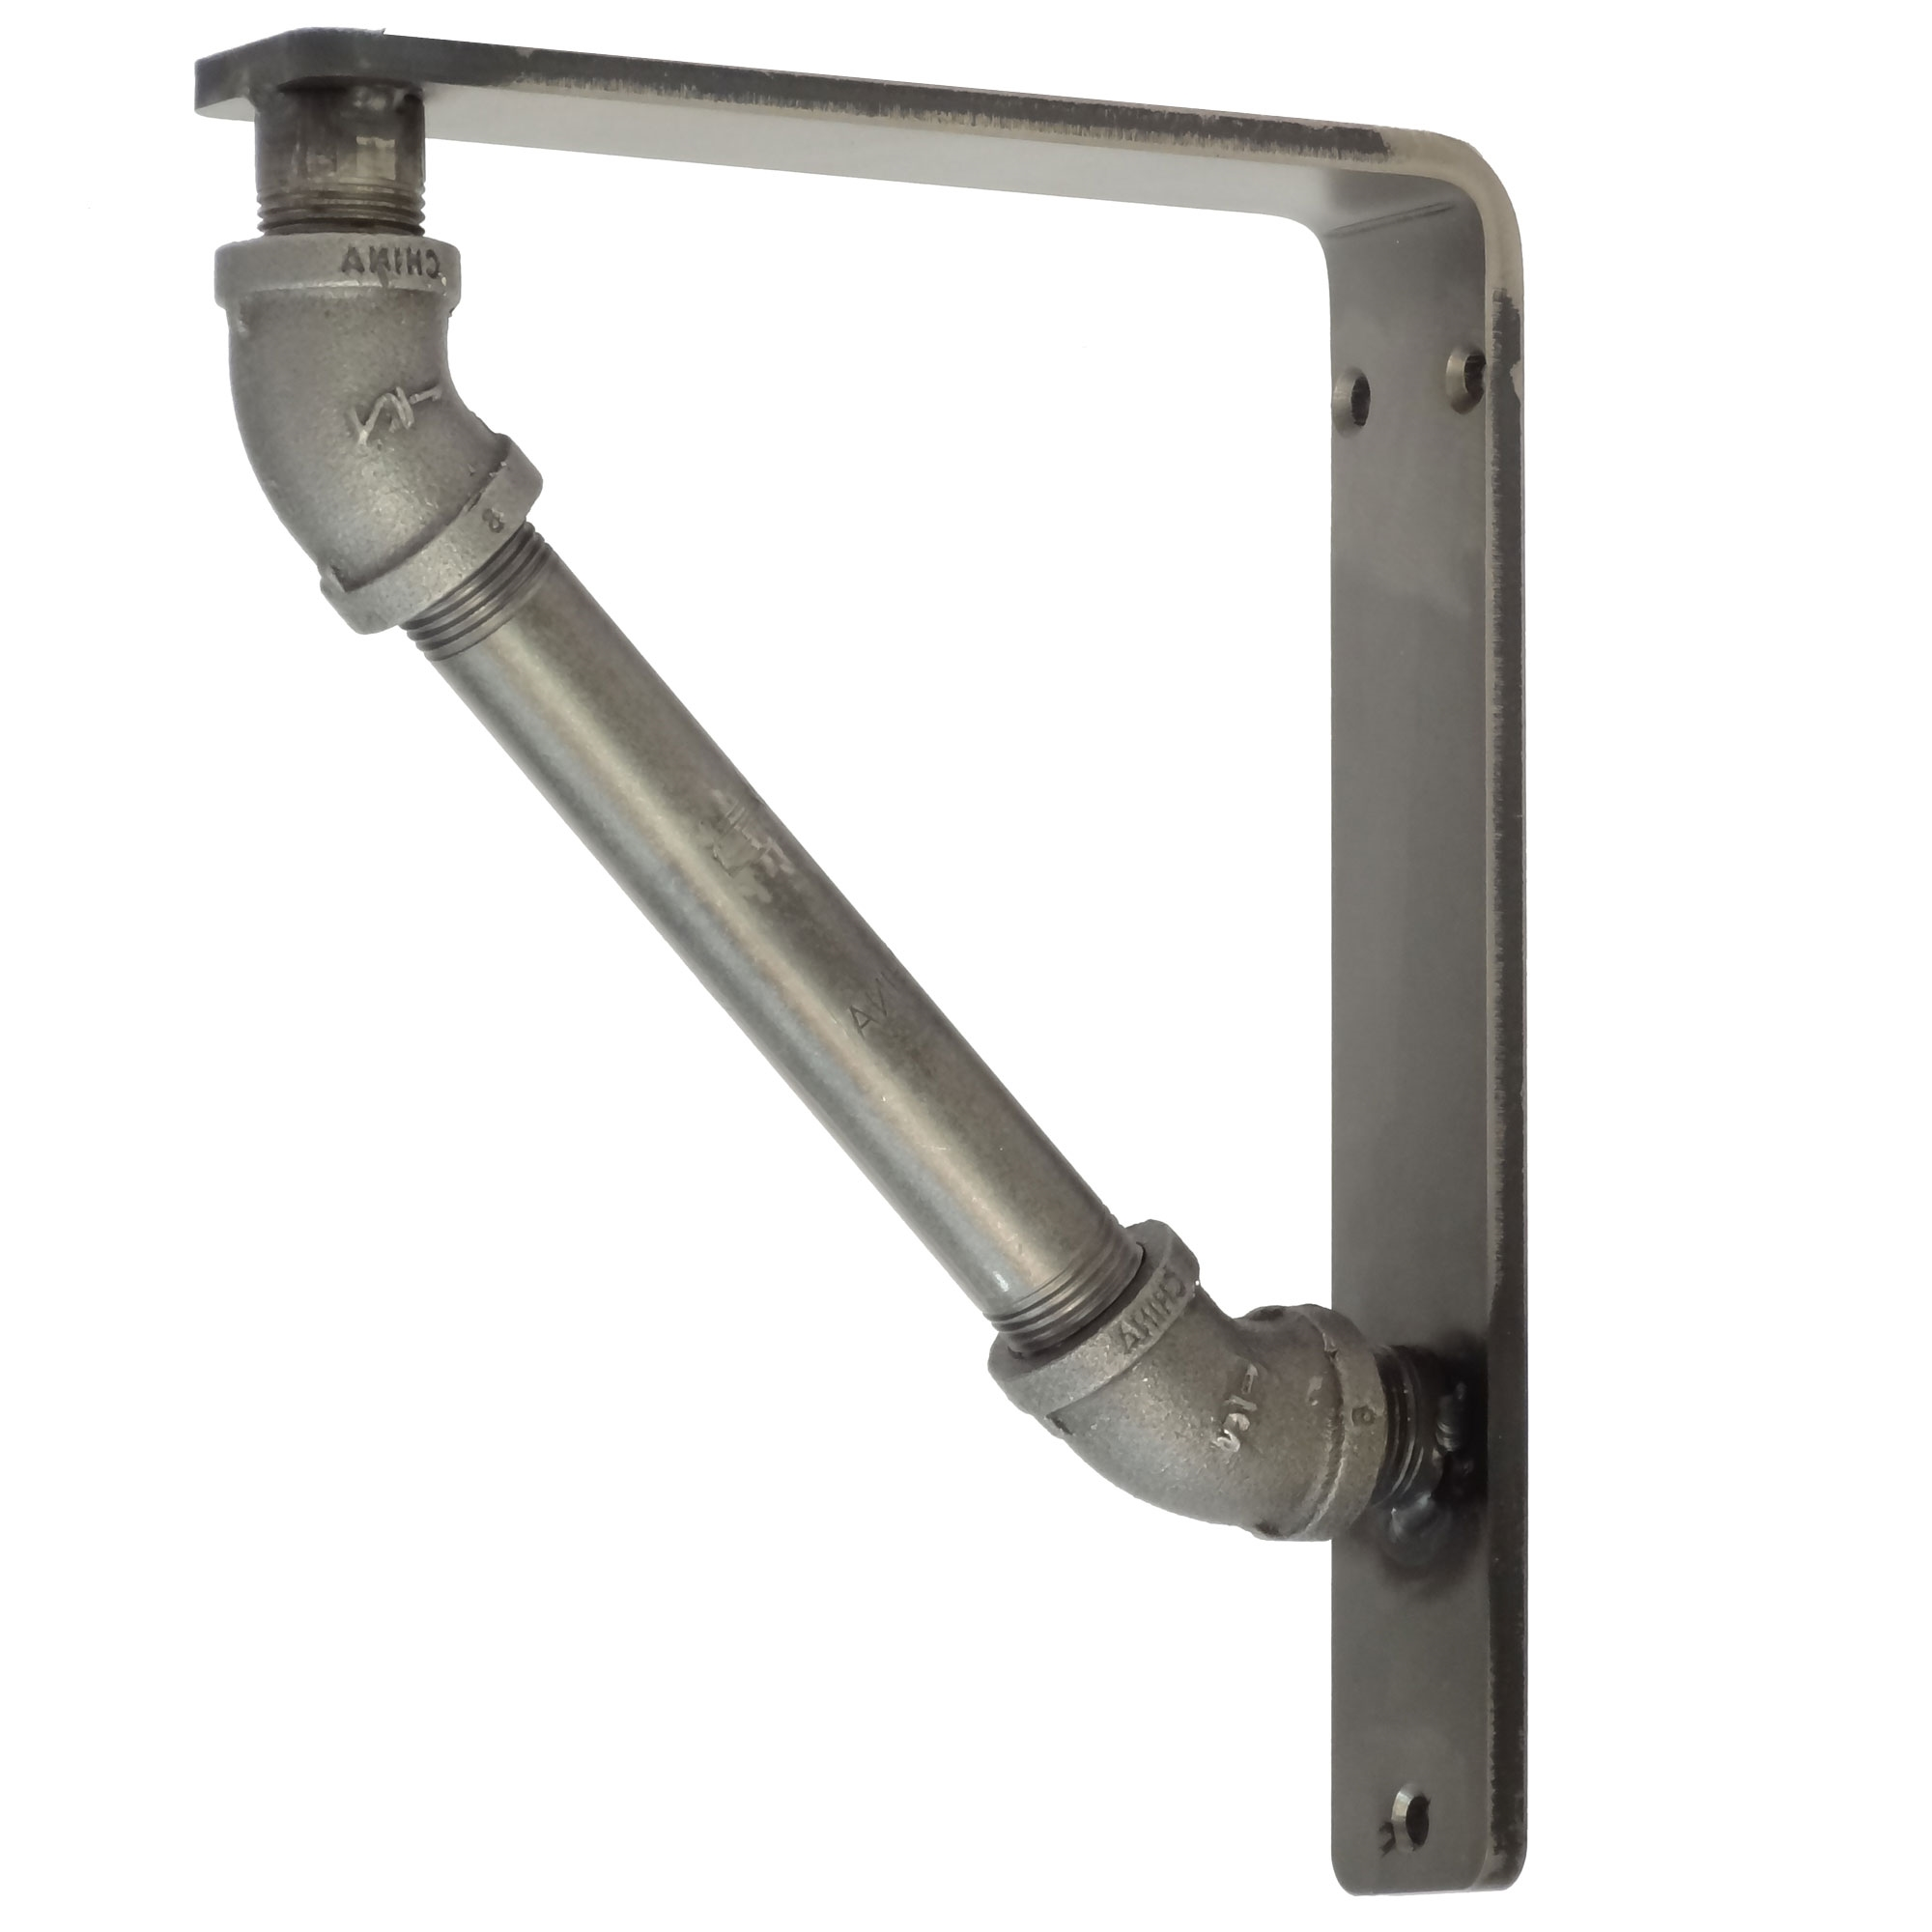 pc tilt biased pan mount brackets arm axis product extendable with images head and support countertop